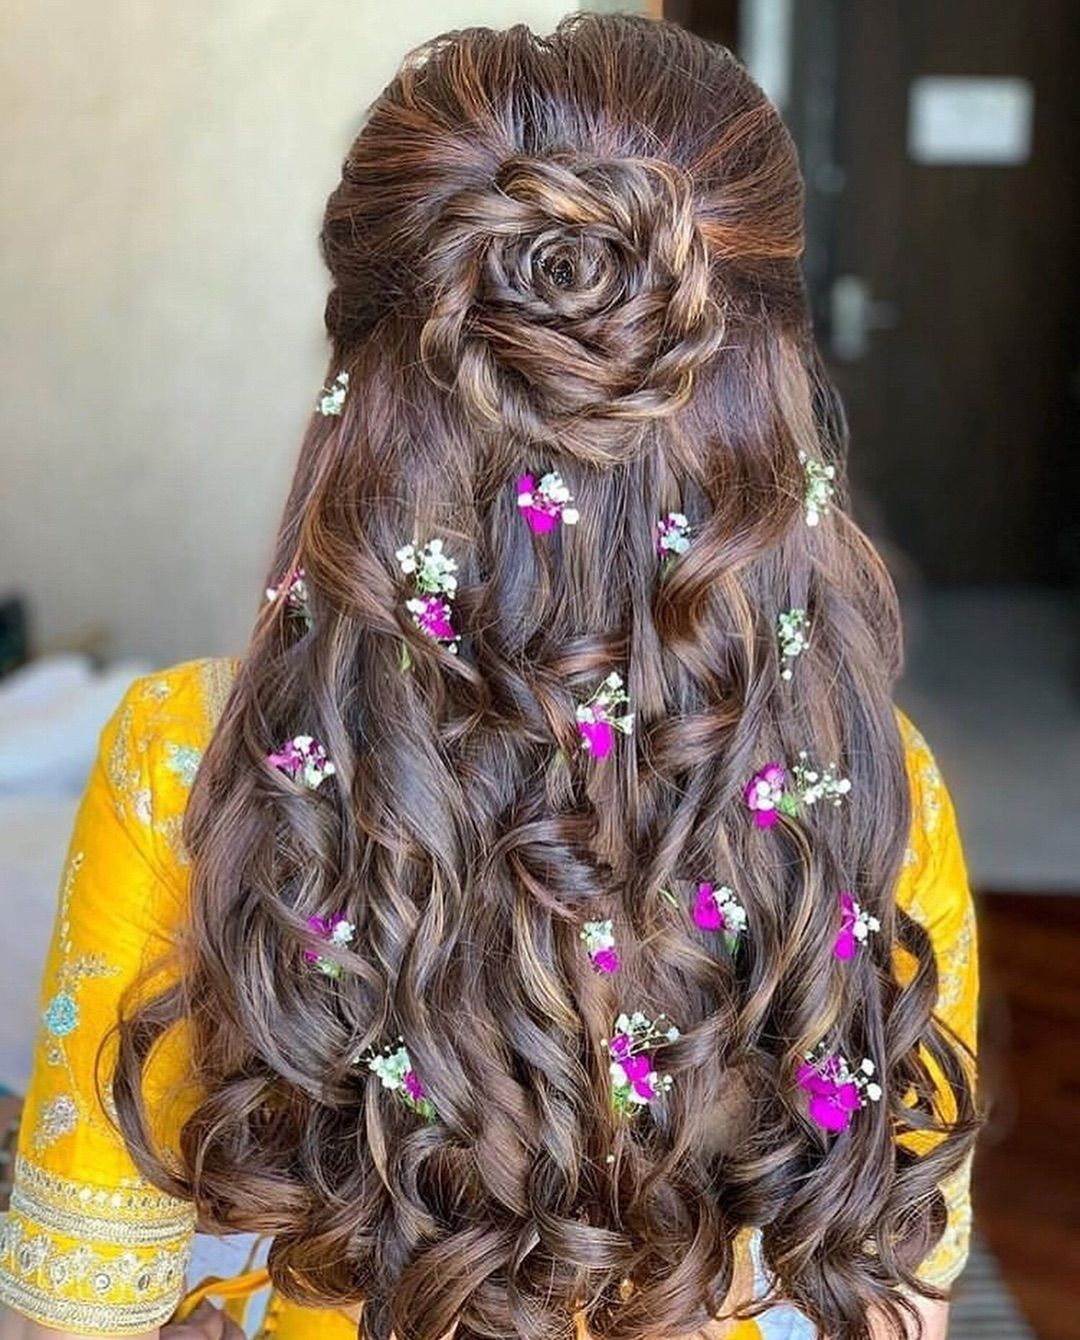 Check out our blog for some really amazing hairstyle picks of this